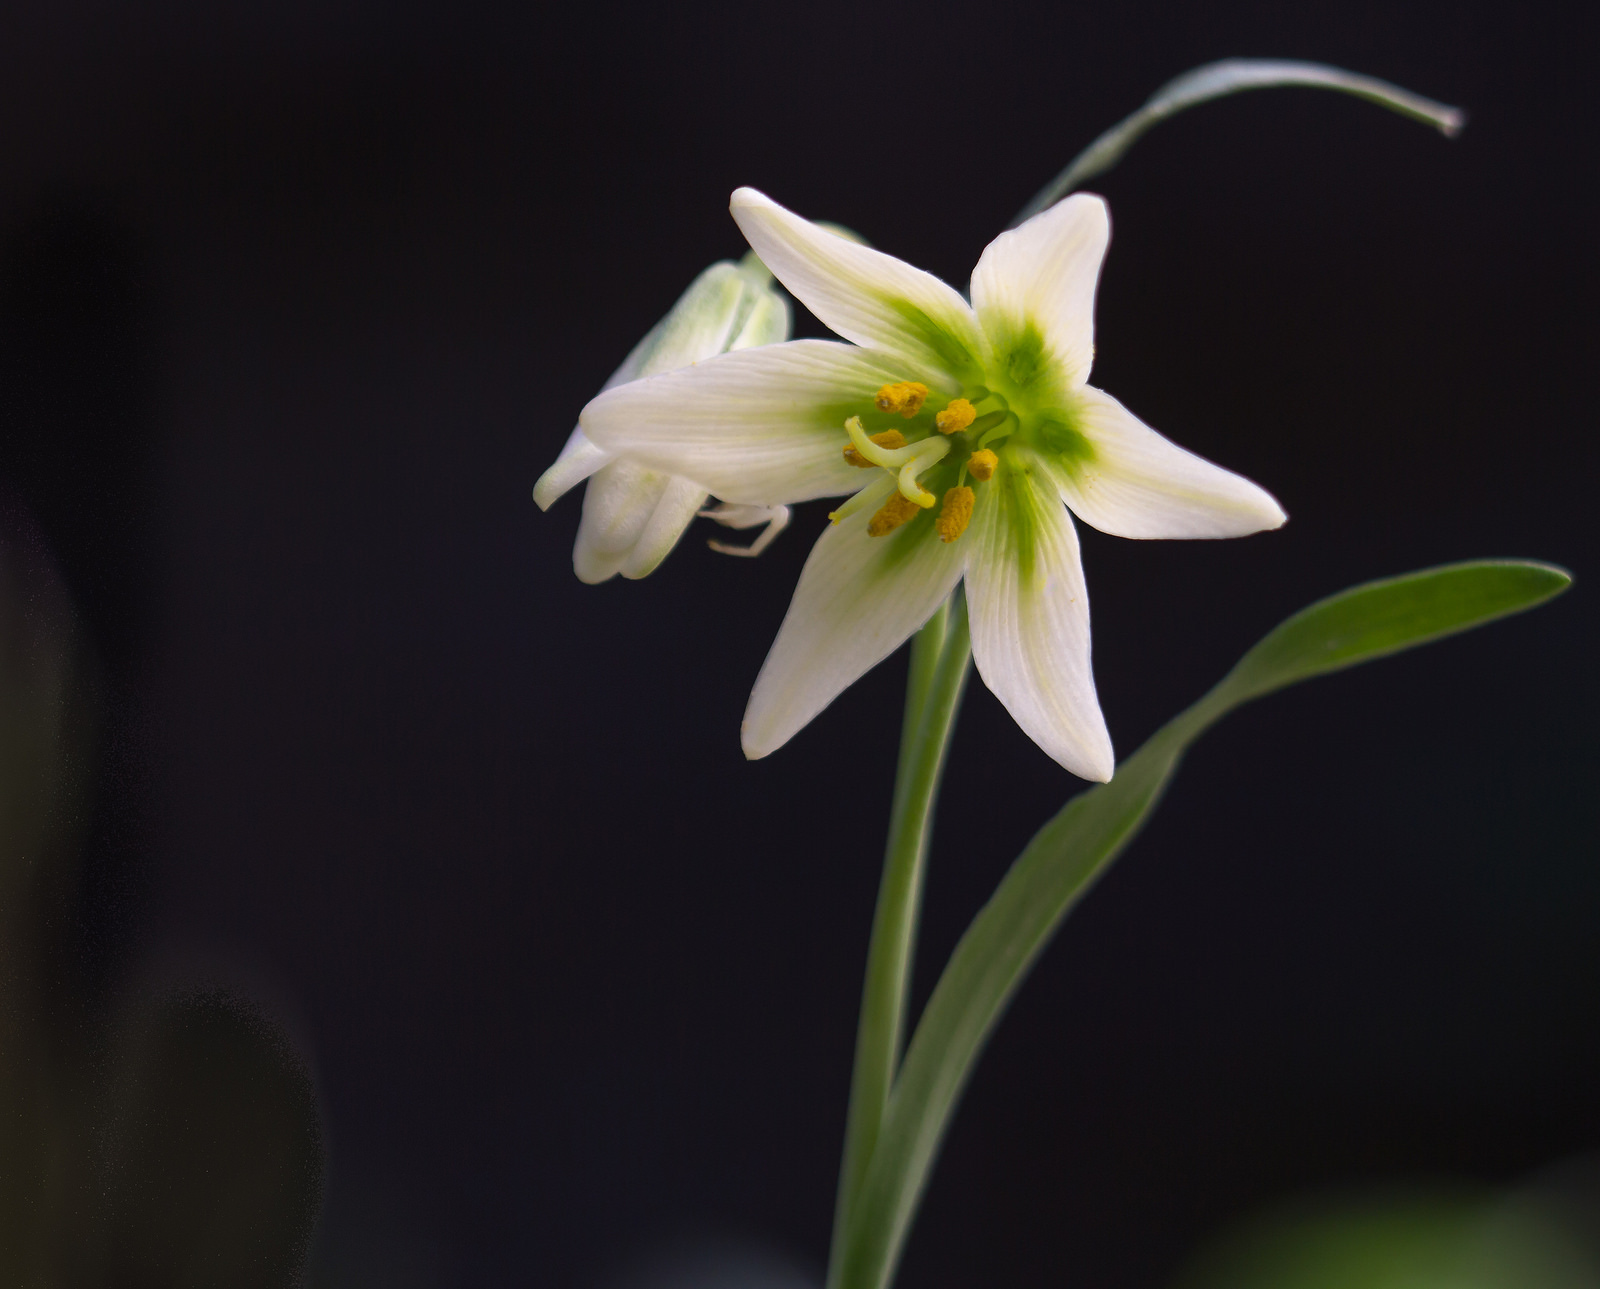 Flower of <i>Fritillaria liliacea</i>